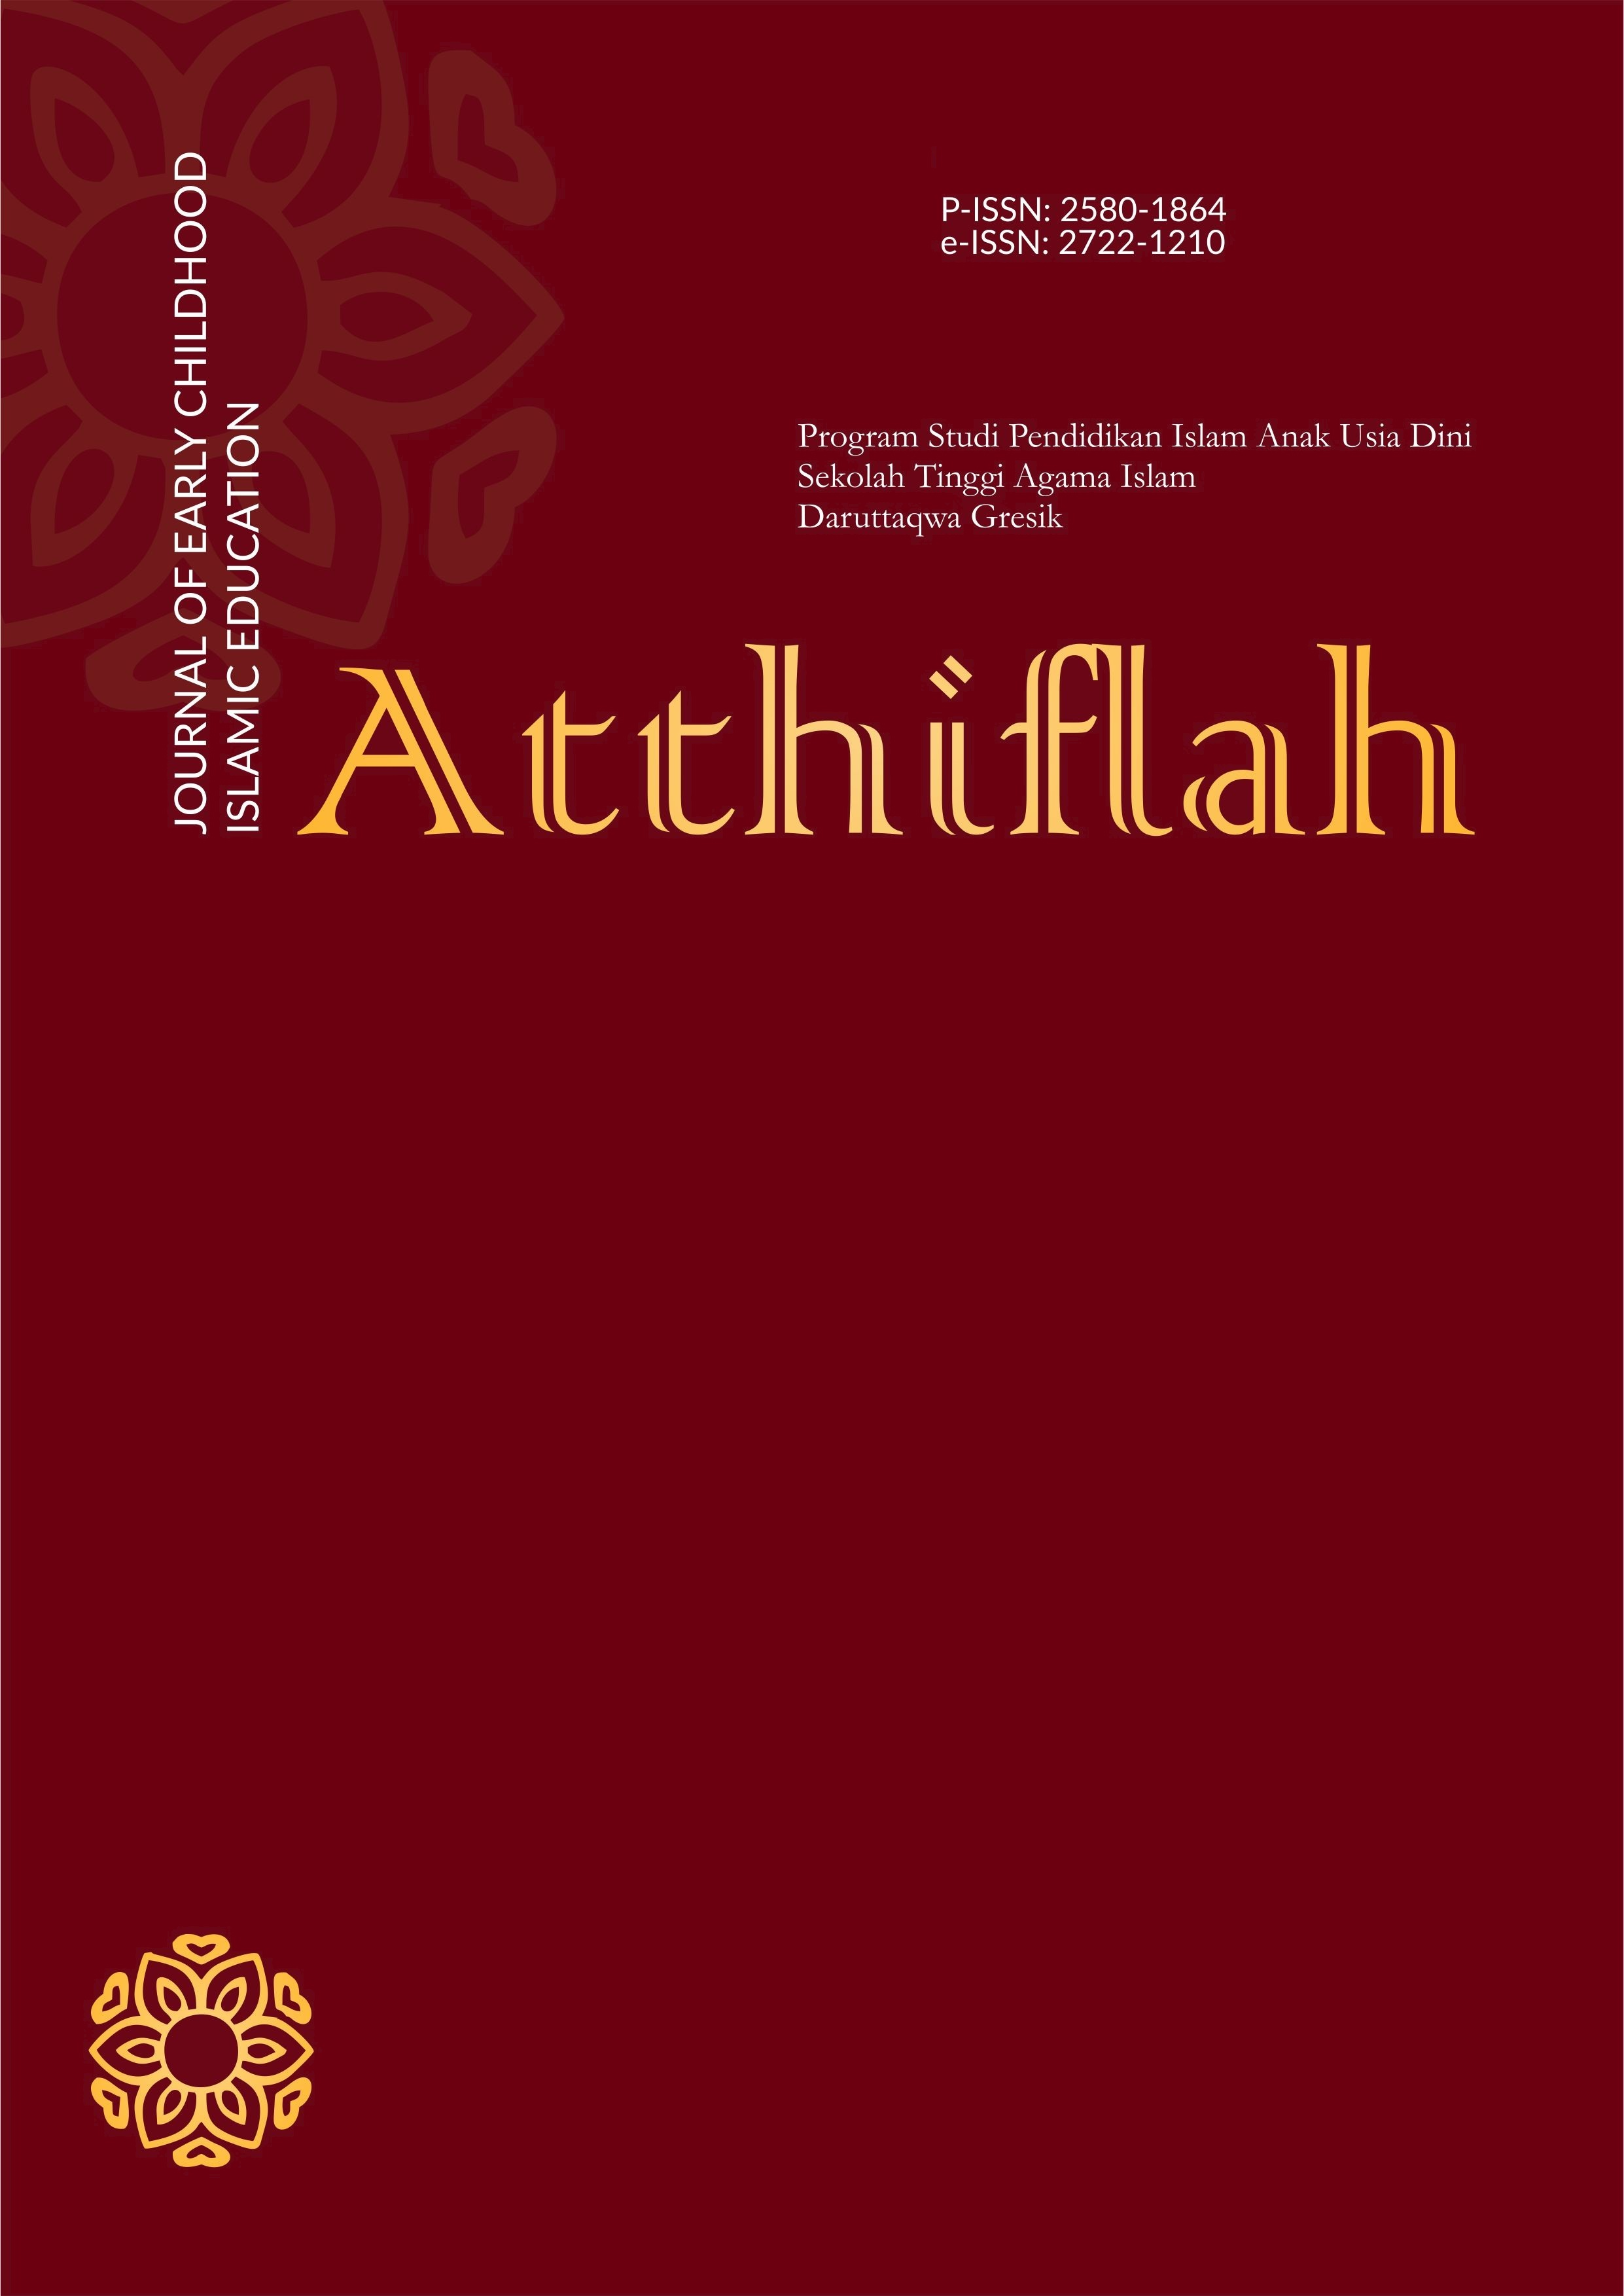 Atthiflah: Journal of Early Childhood Islamic Education